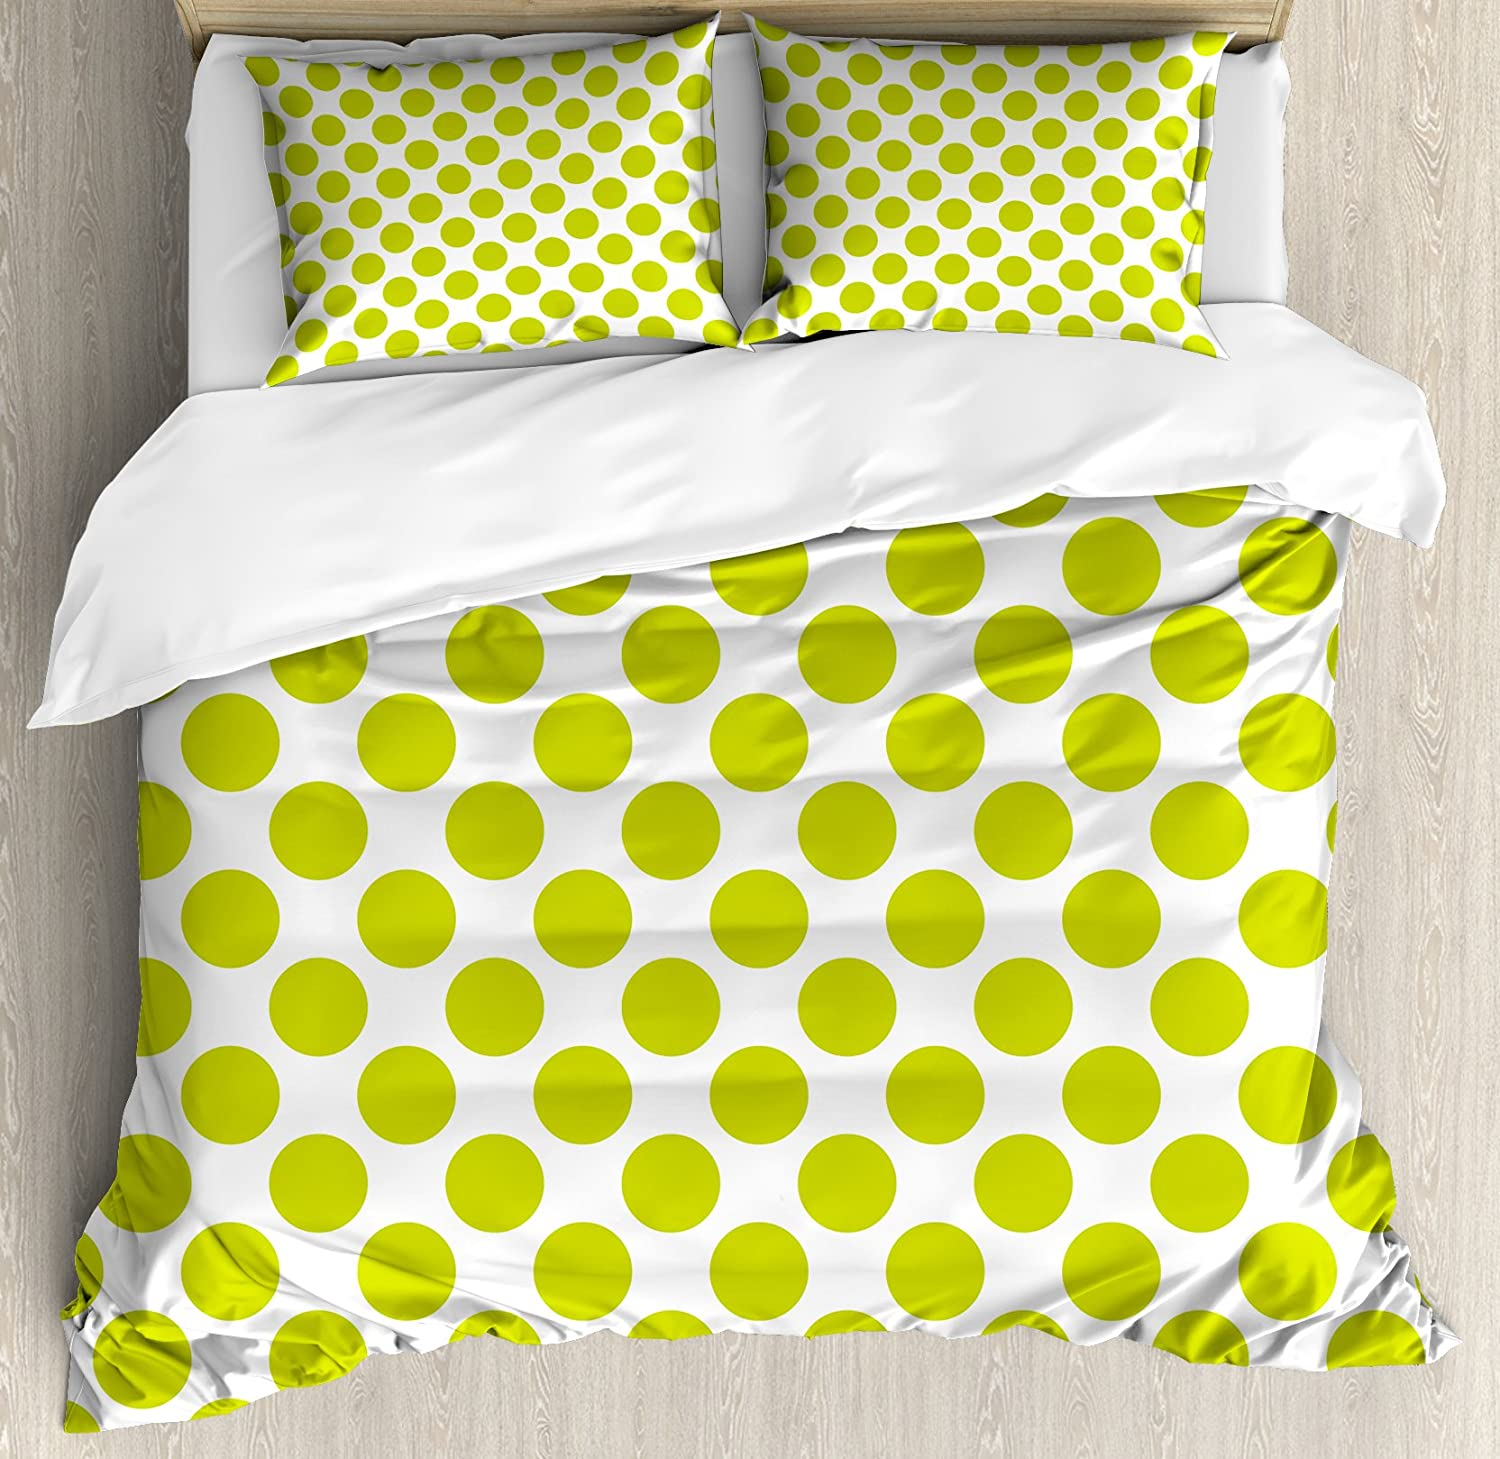 Ambesonne Lime Green Duvet Cover Set, Nostalgic Polka Dots Style Large Circles Girlish Vintage Rounds Pattern, Decorative 3 Piece Bedding Set with 2 Pillow Shams, Queen Size, Apple Green